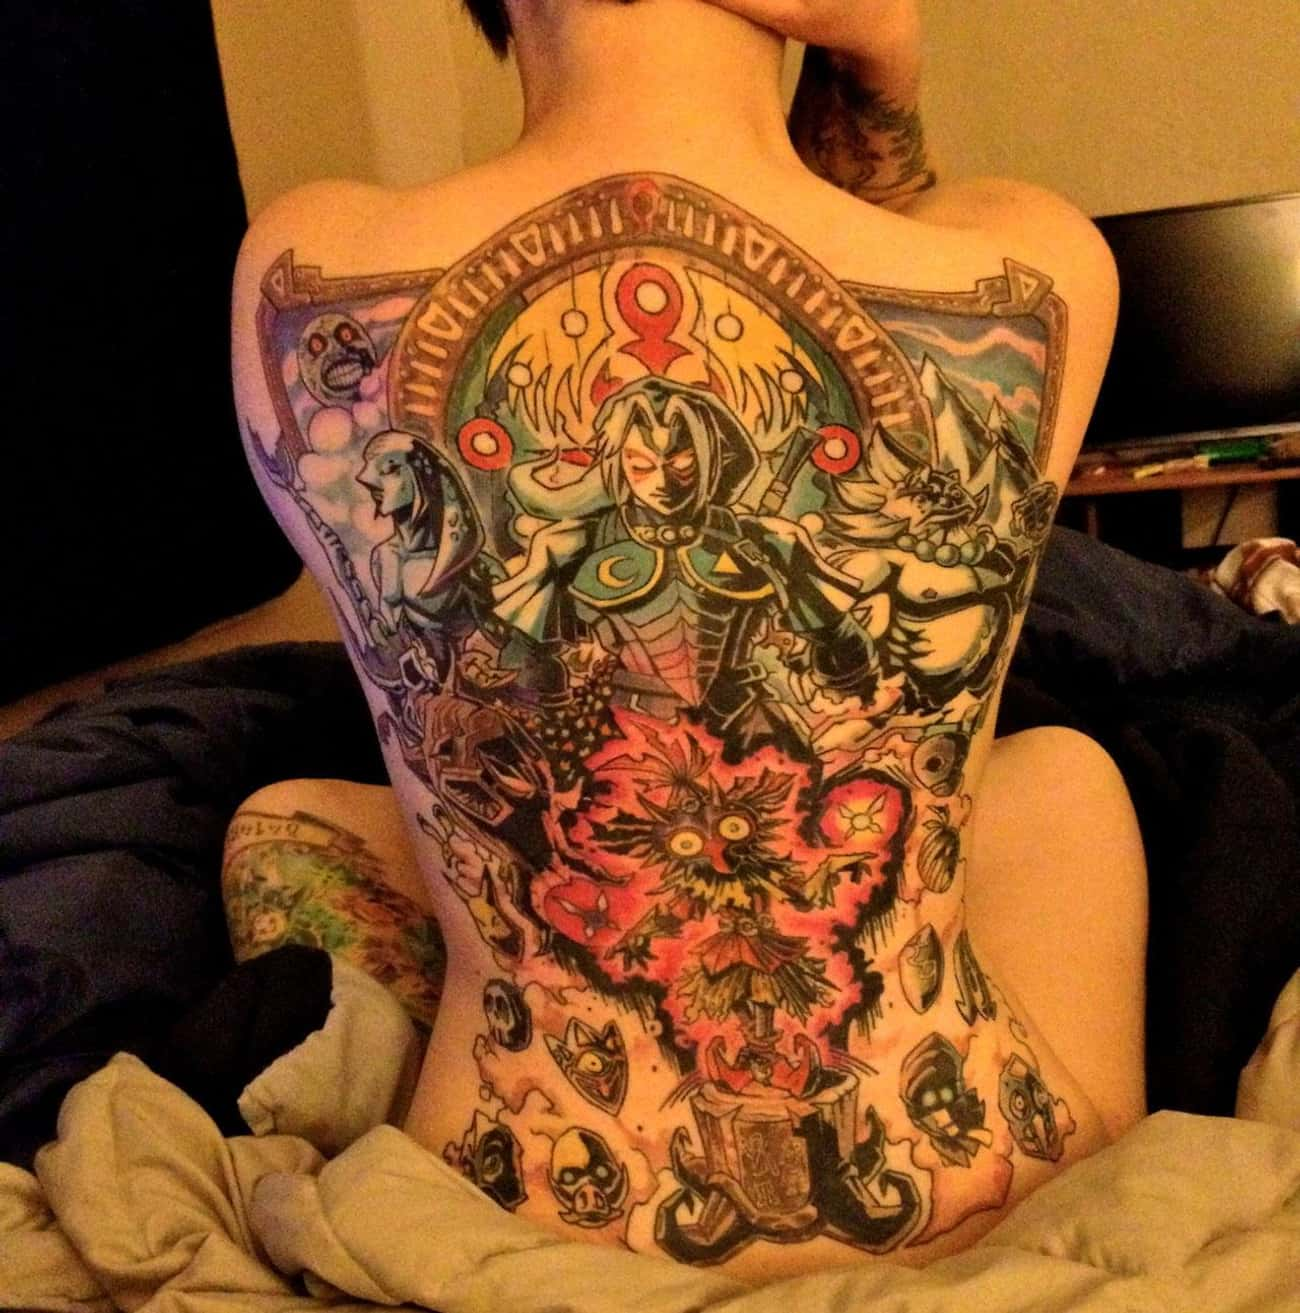 Fierce Deity Back Tat is listed (or ranked) 1 on the list Tattoos Inspired by the Legend of Zelda